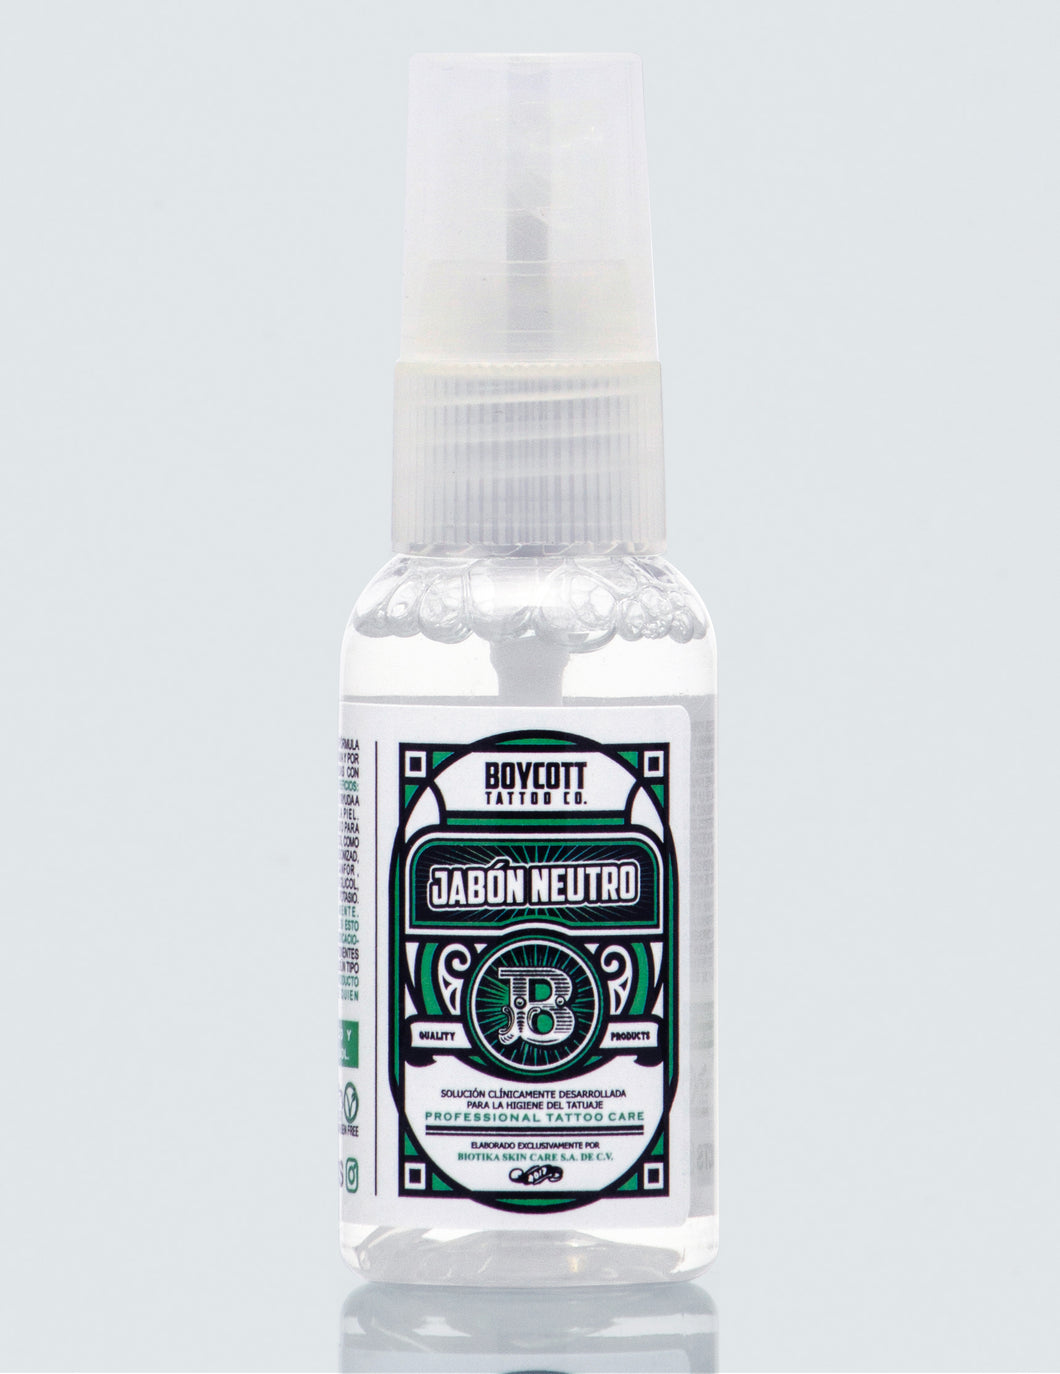 Boycott Jabón Neutro 30ml